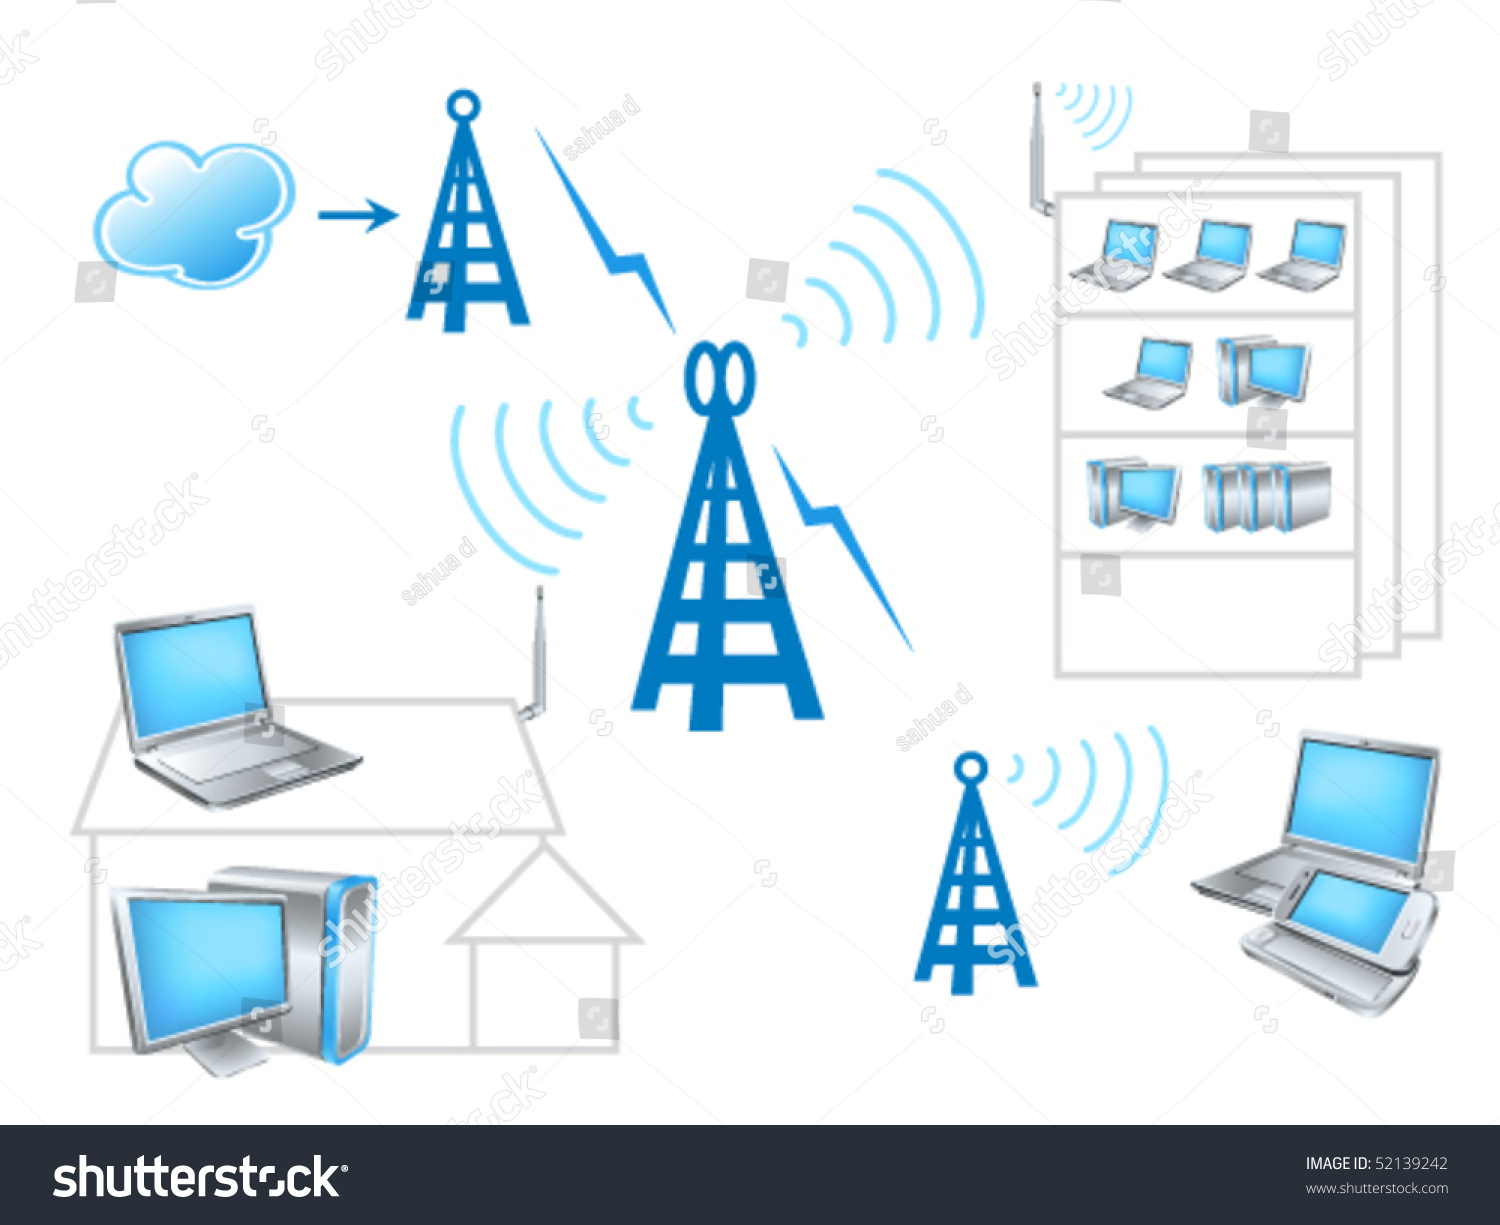 Wi max network diagram glossy hitech devices em vetor stock 52139242 wi max network diagram glossy hitech devices em vetor stock 52139242 shutterstock ccuart Choice Image